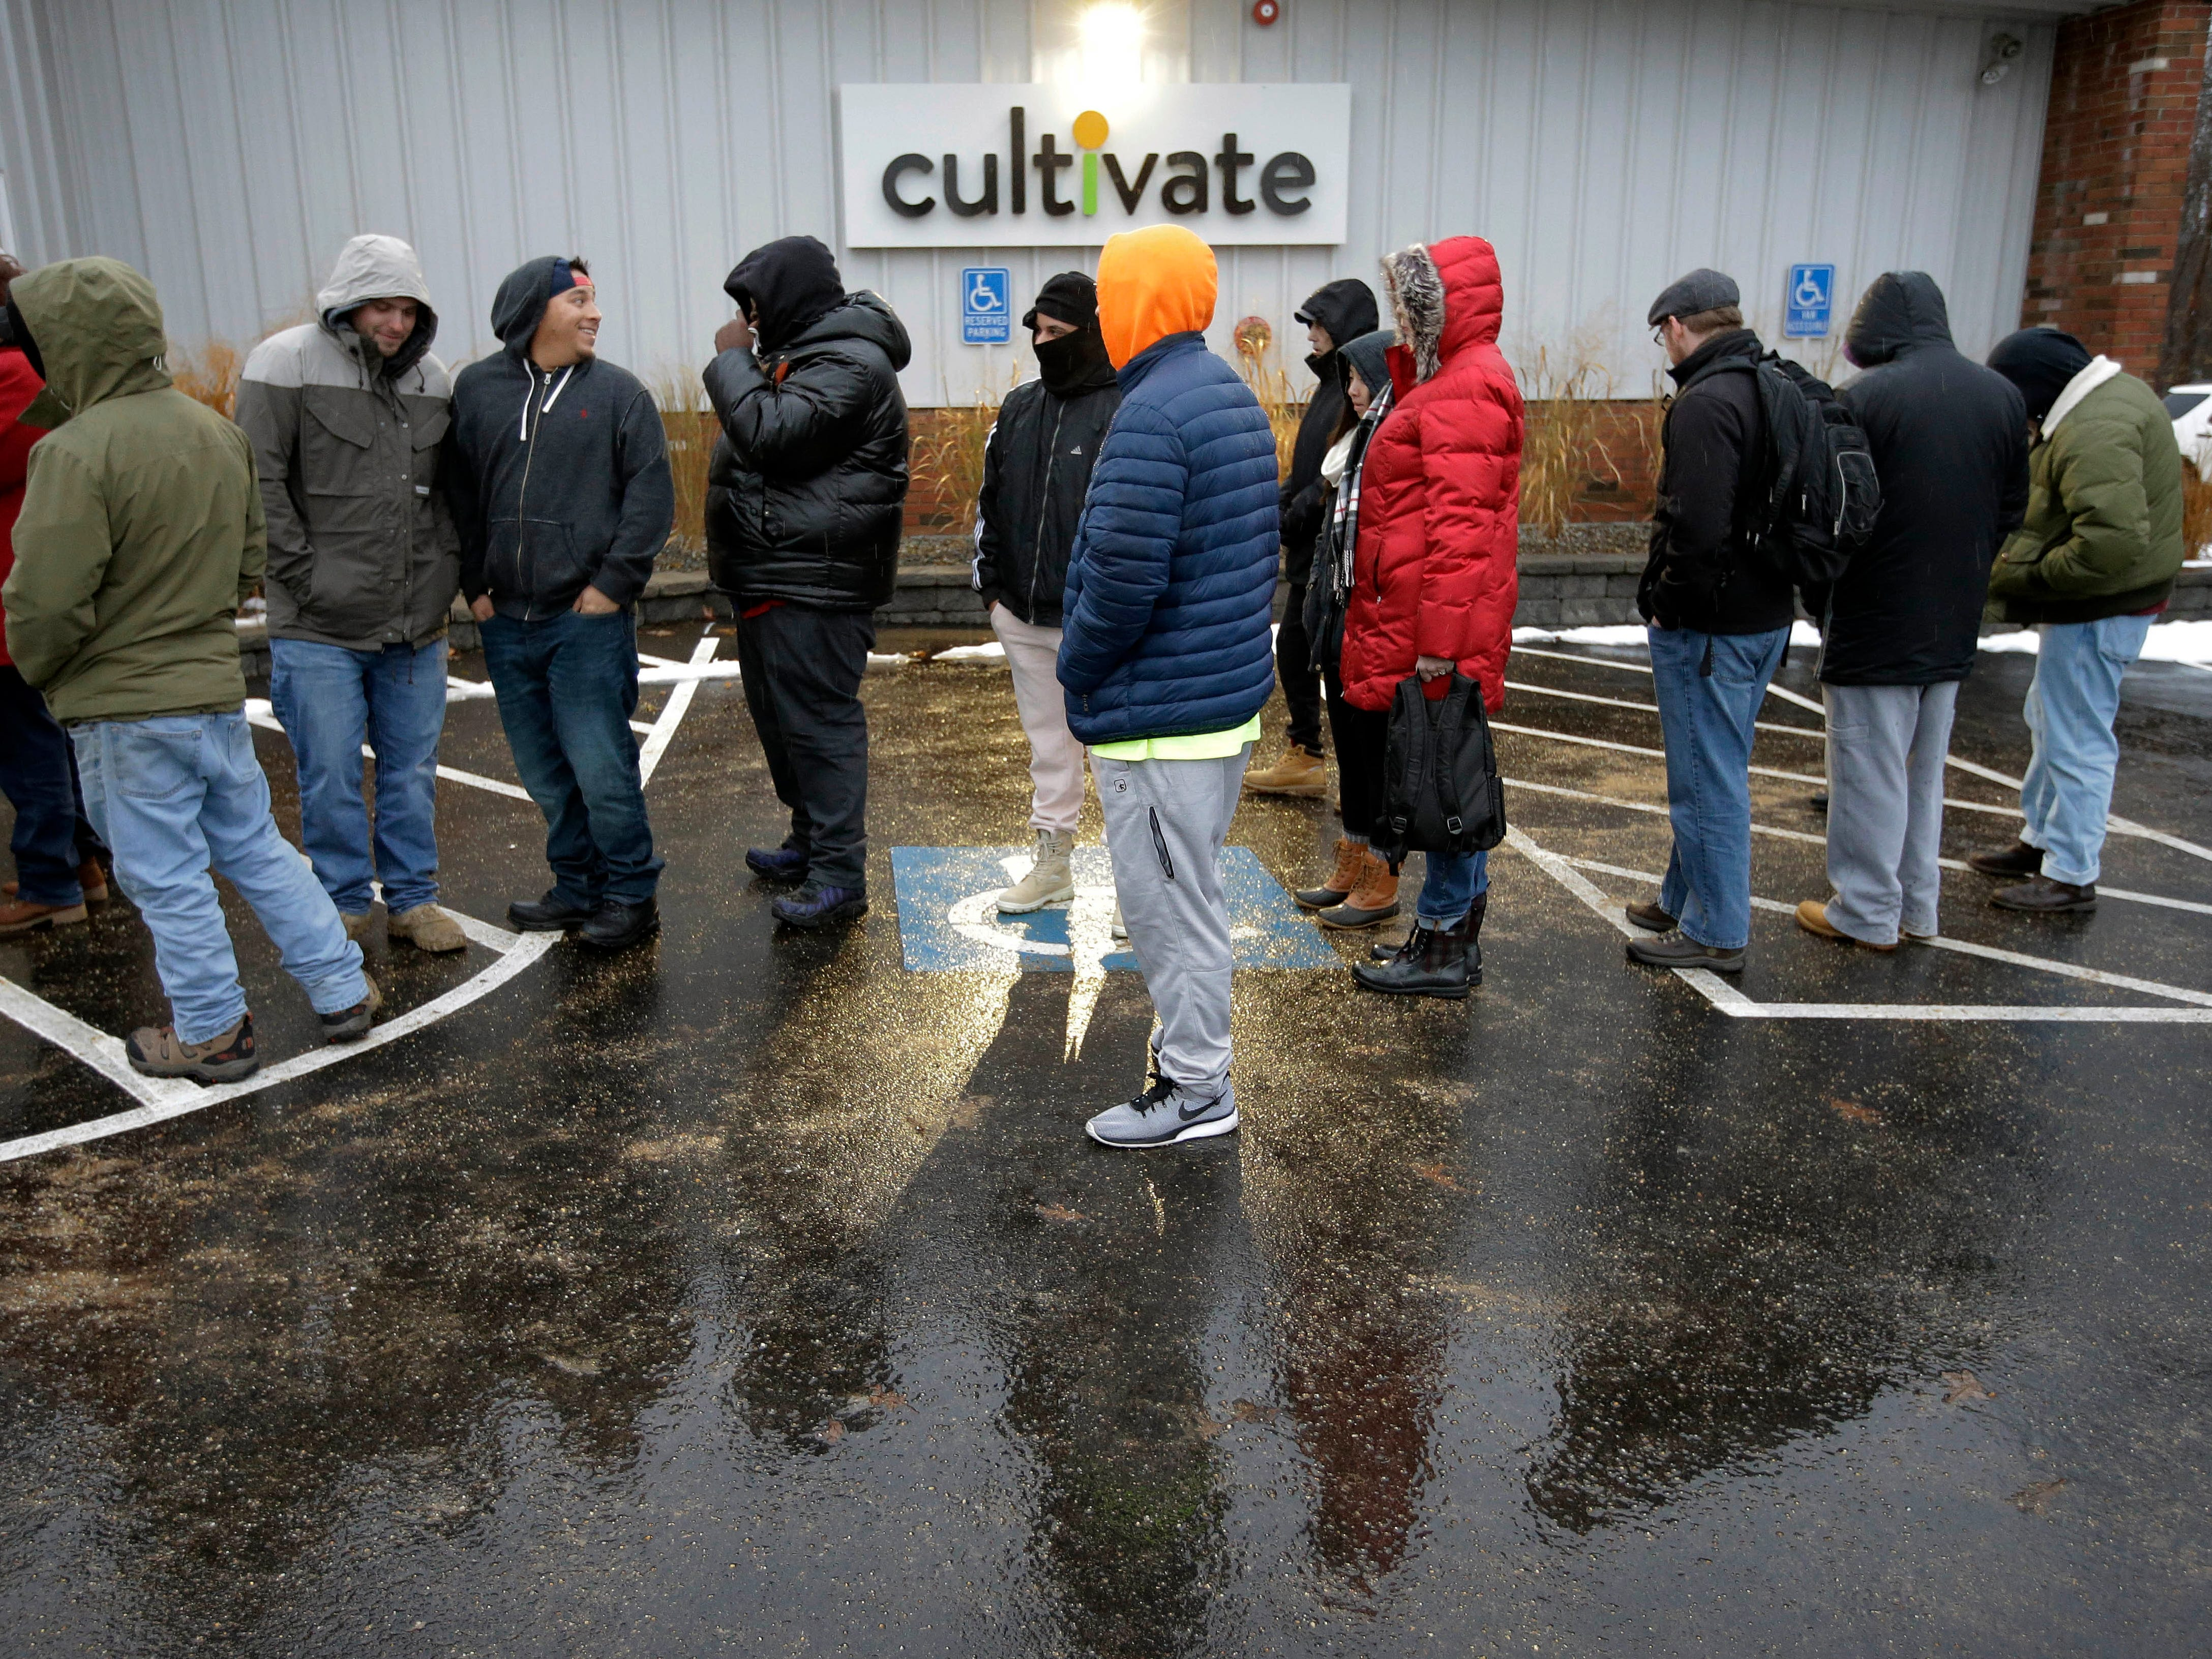 Customers wait outside the Cultivate cannabis dispensary to purchase recreational marijuana on the first day of legal sales, Tuesday, Nov. 20, 2018, in Leicester, Mass. Cultivate is one of the first two shops permitted to sell recreational marijuana in the eastern United States.